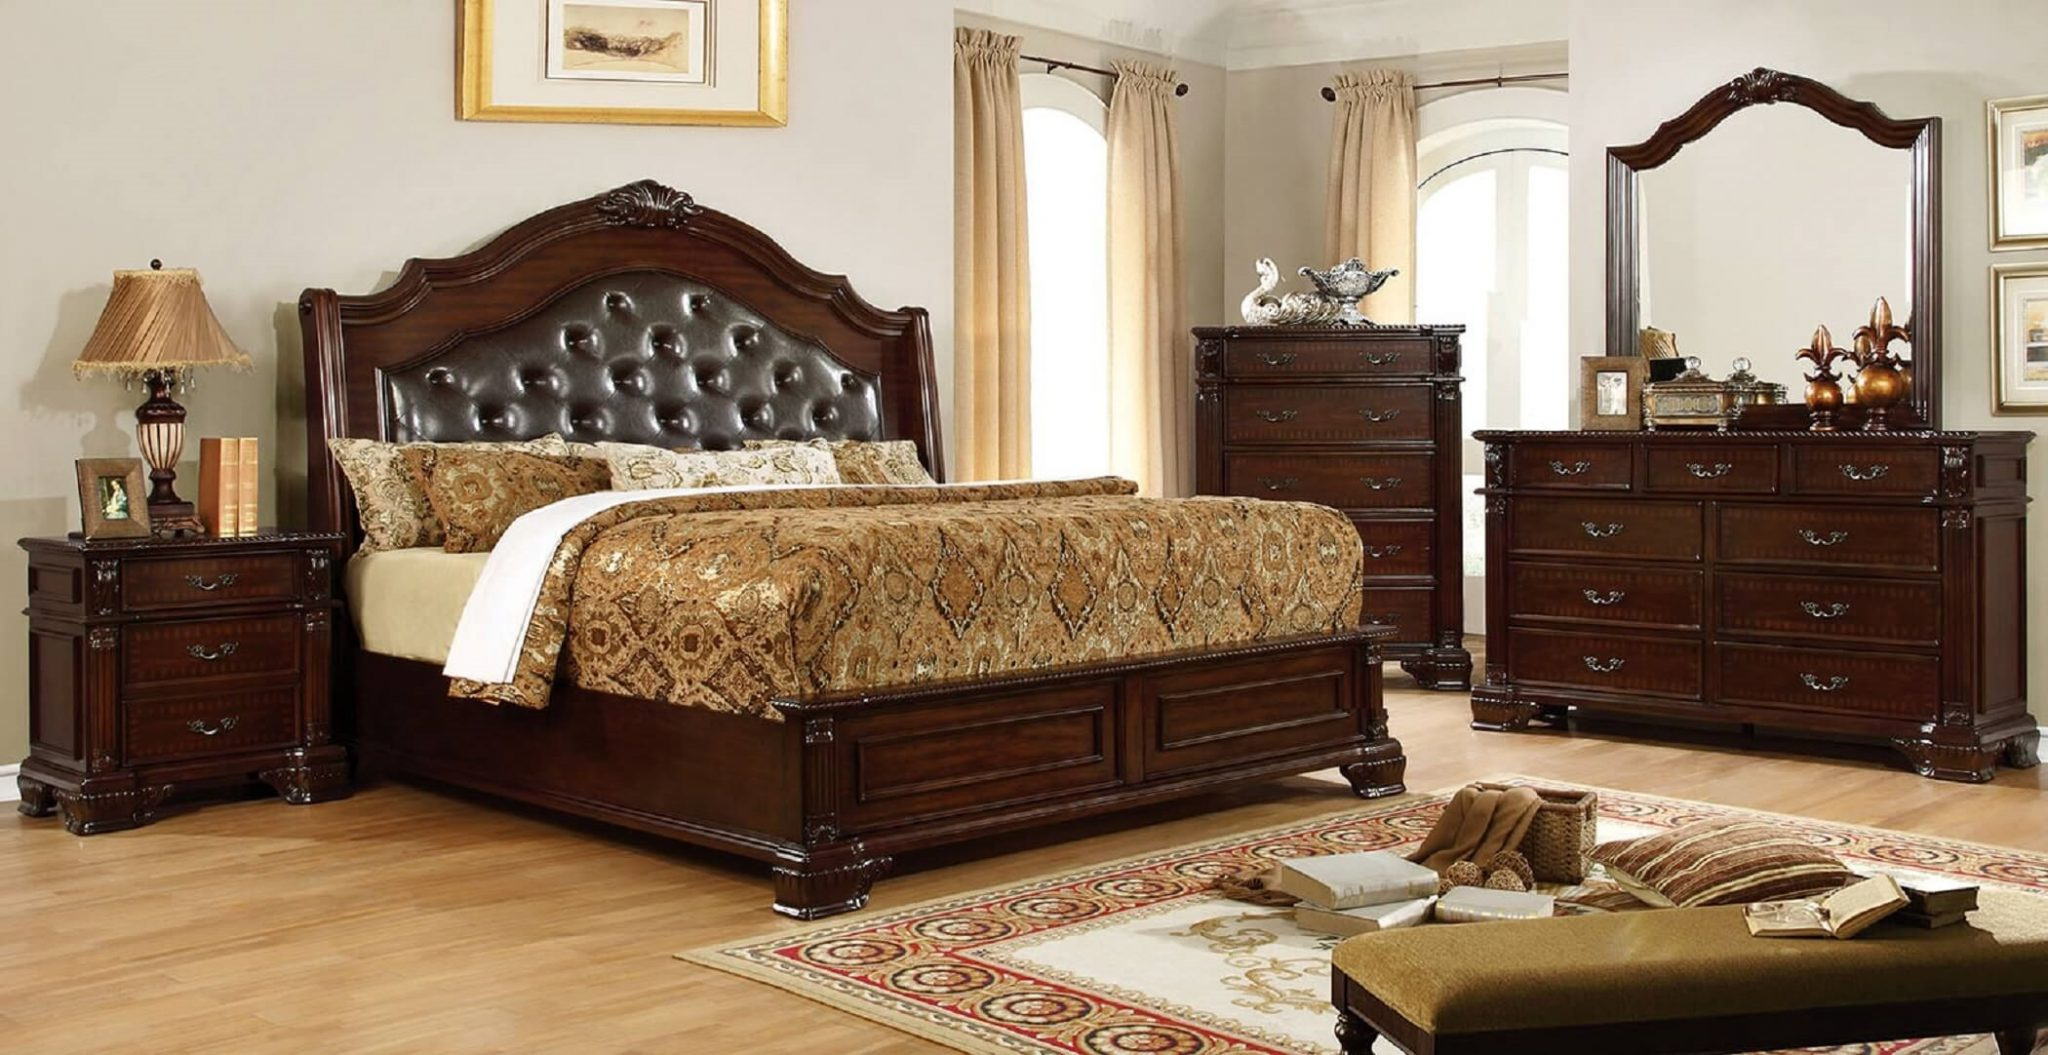 traditional bedroom furniture sets photo - 9